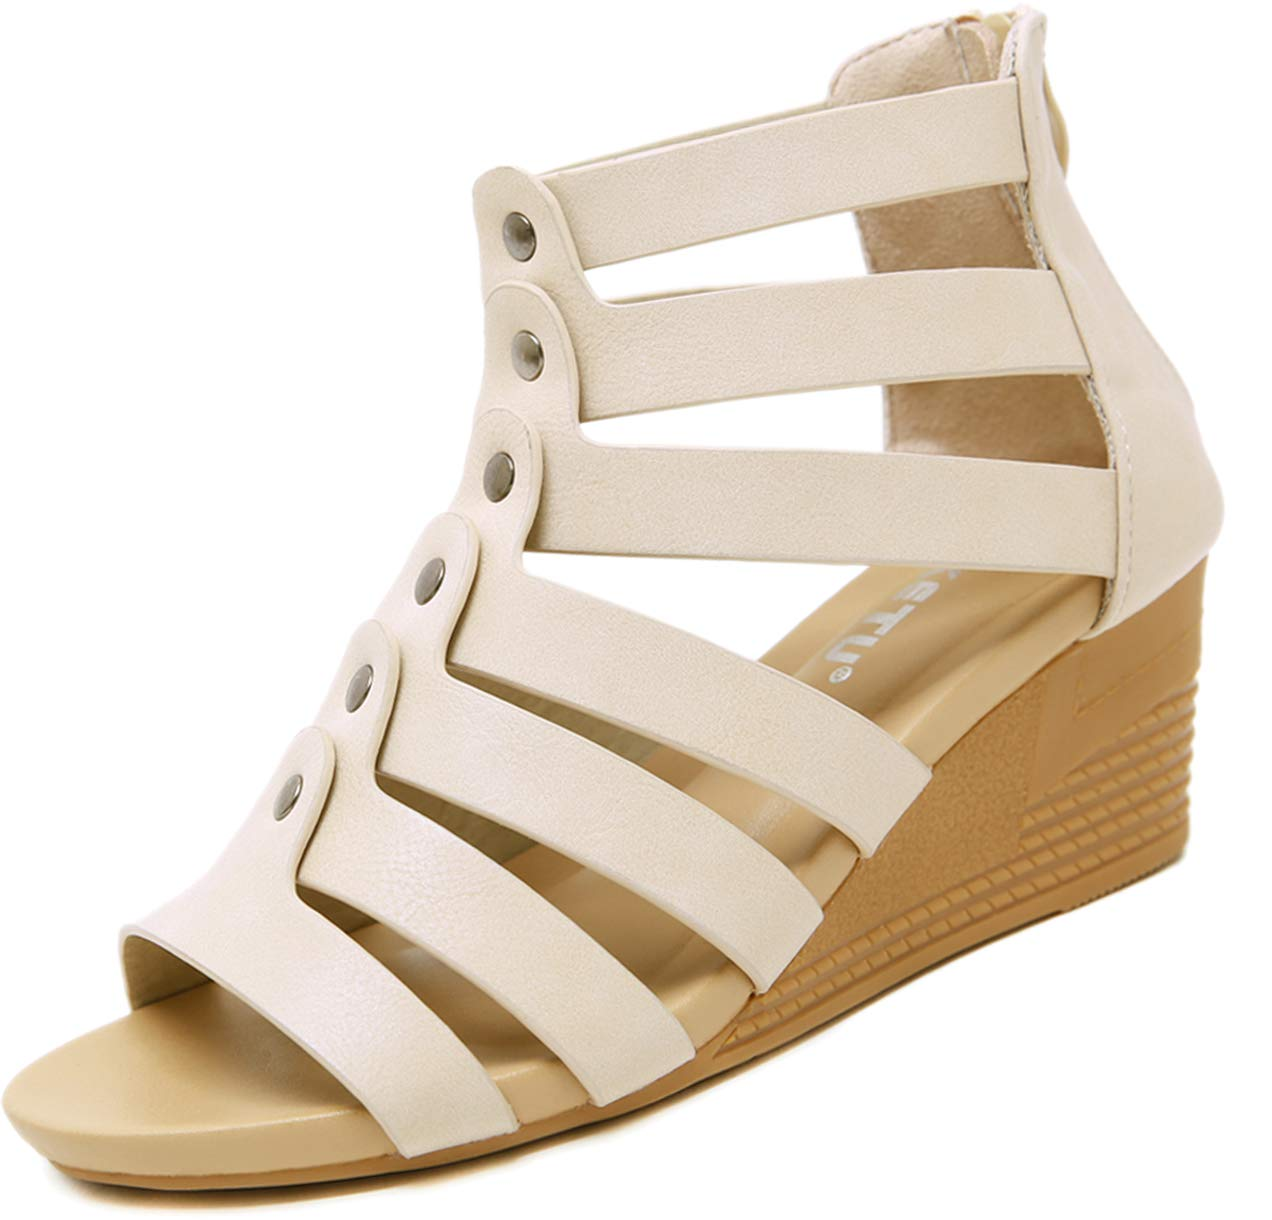 Yozai Womens Low Wedge Summer Sandals with Back Zipper